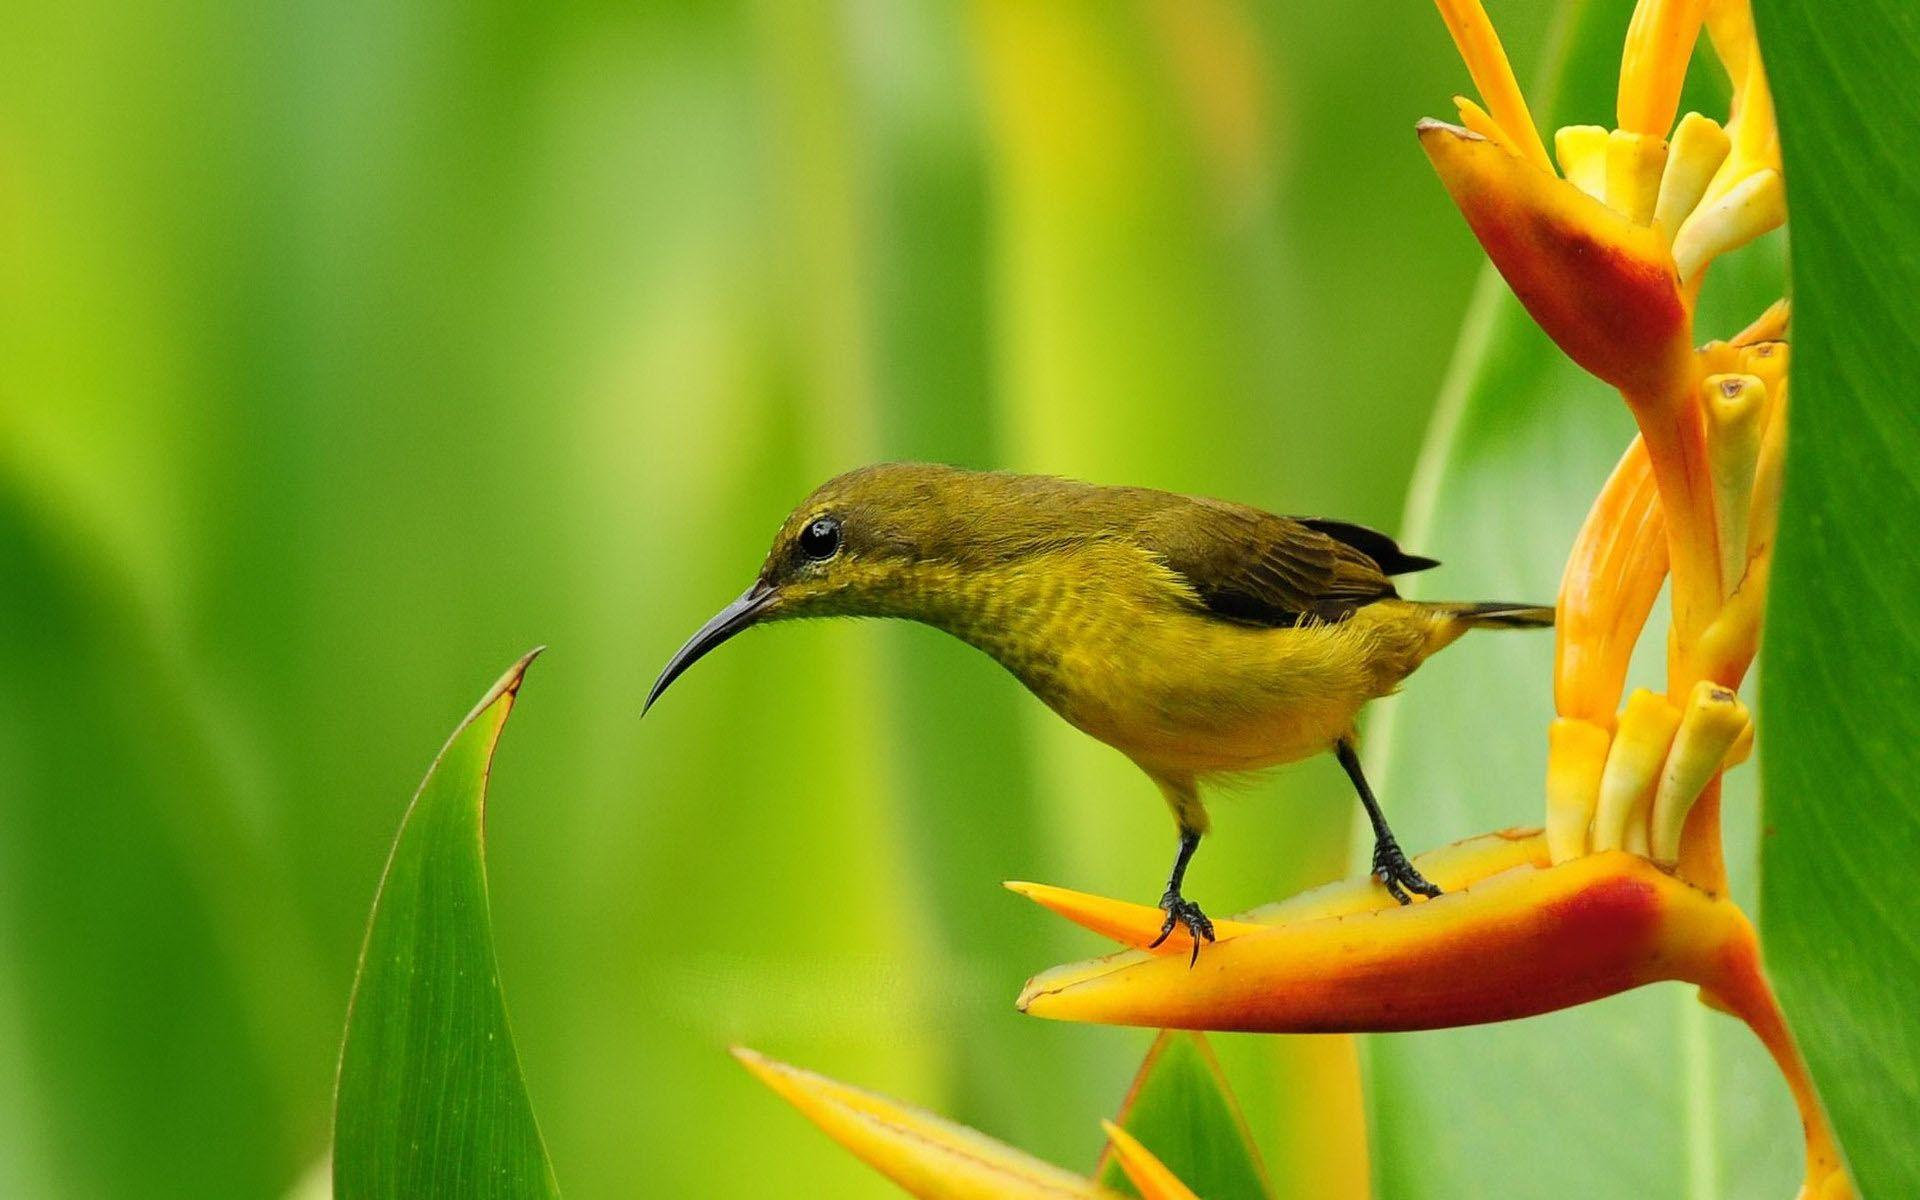 Spring Flowers And Birds Wallpaper Background 1 HD Wallpapers ...